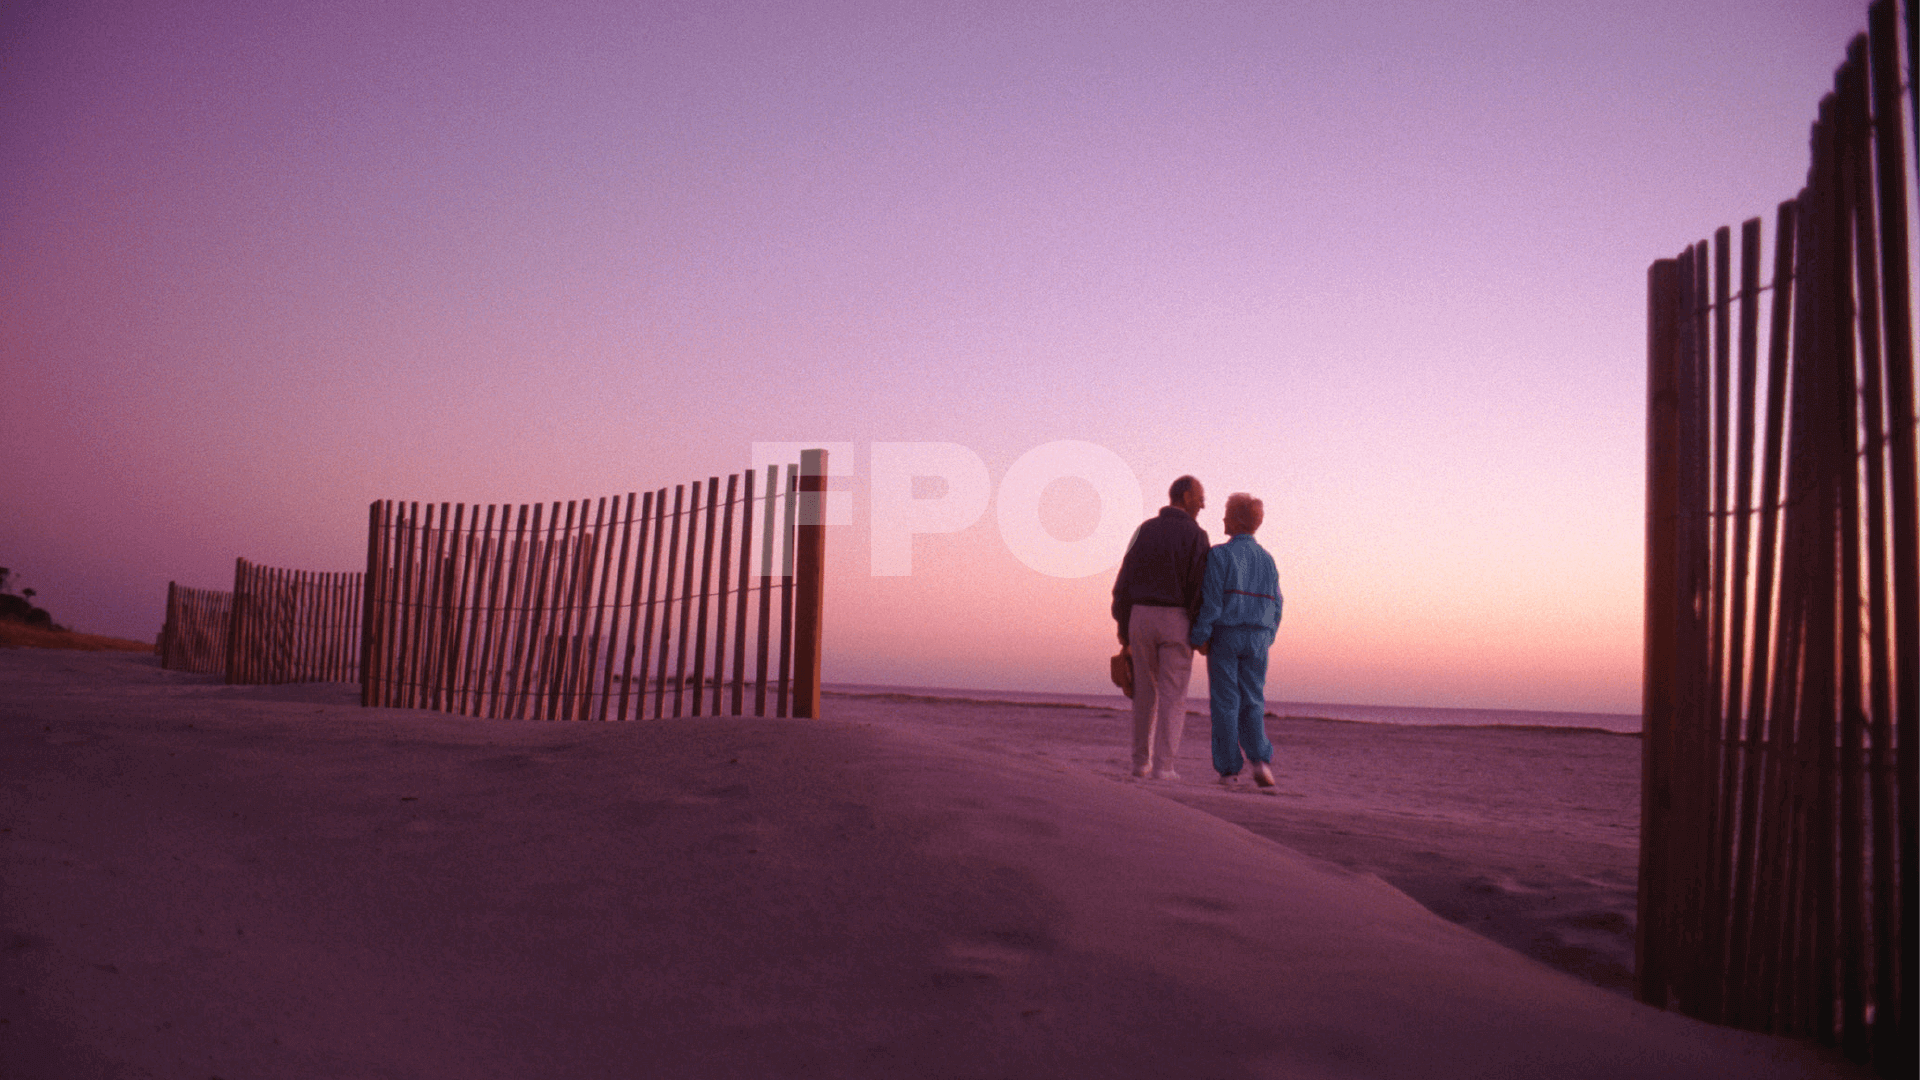 senior couple walking together on the beach at sunset